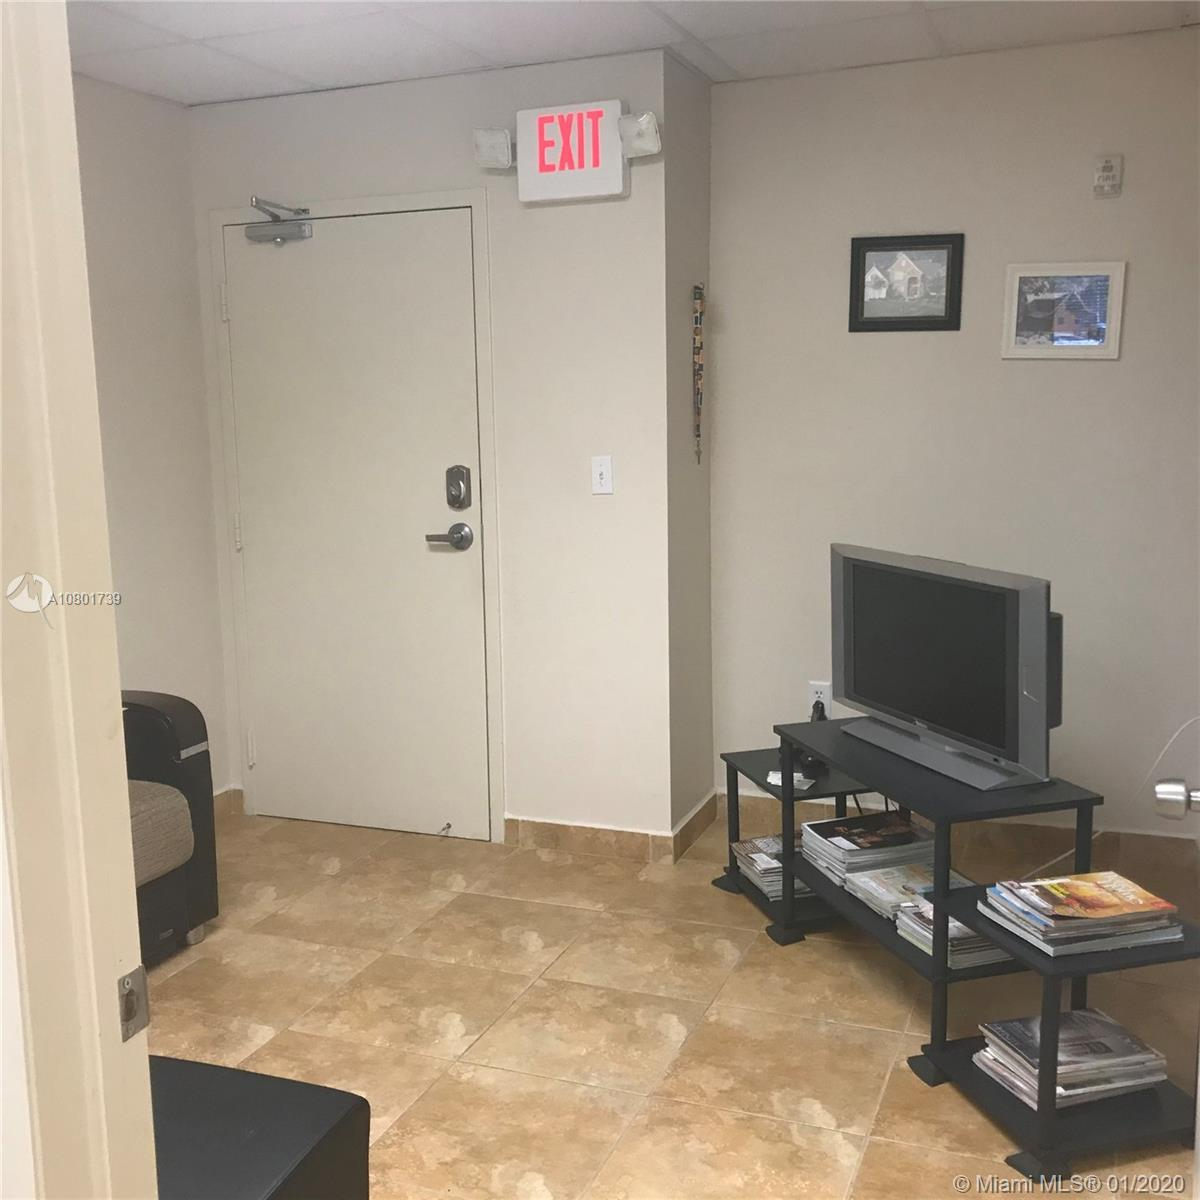 CENTRAL LOCATION, PROFESSIONAL OFFICE BUILDING NEAR EVERYTHIG. CONVENIENT FIRST FLOOR LOCATION.